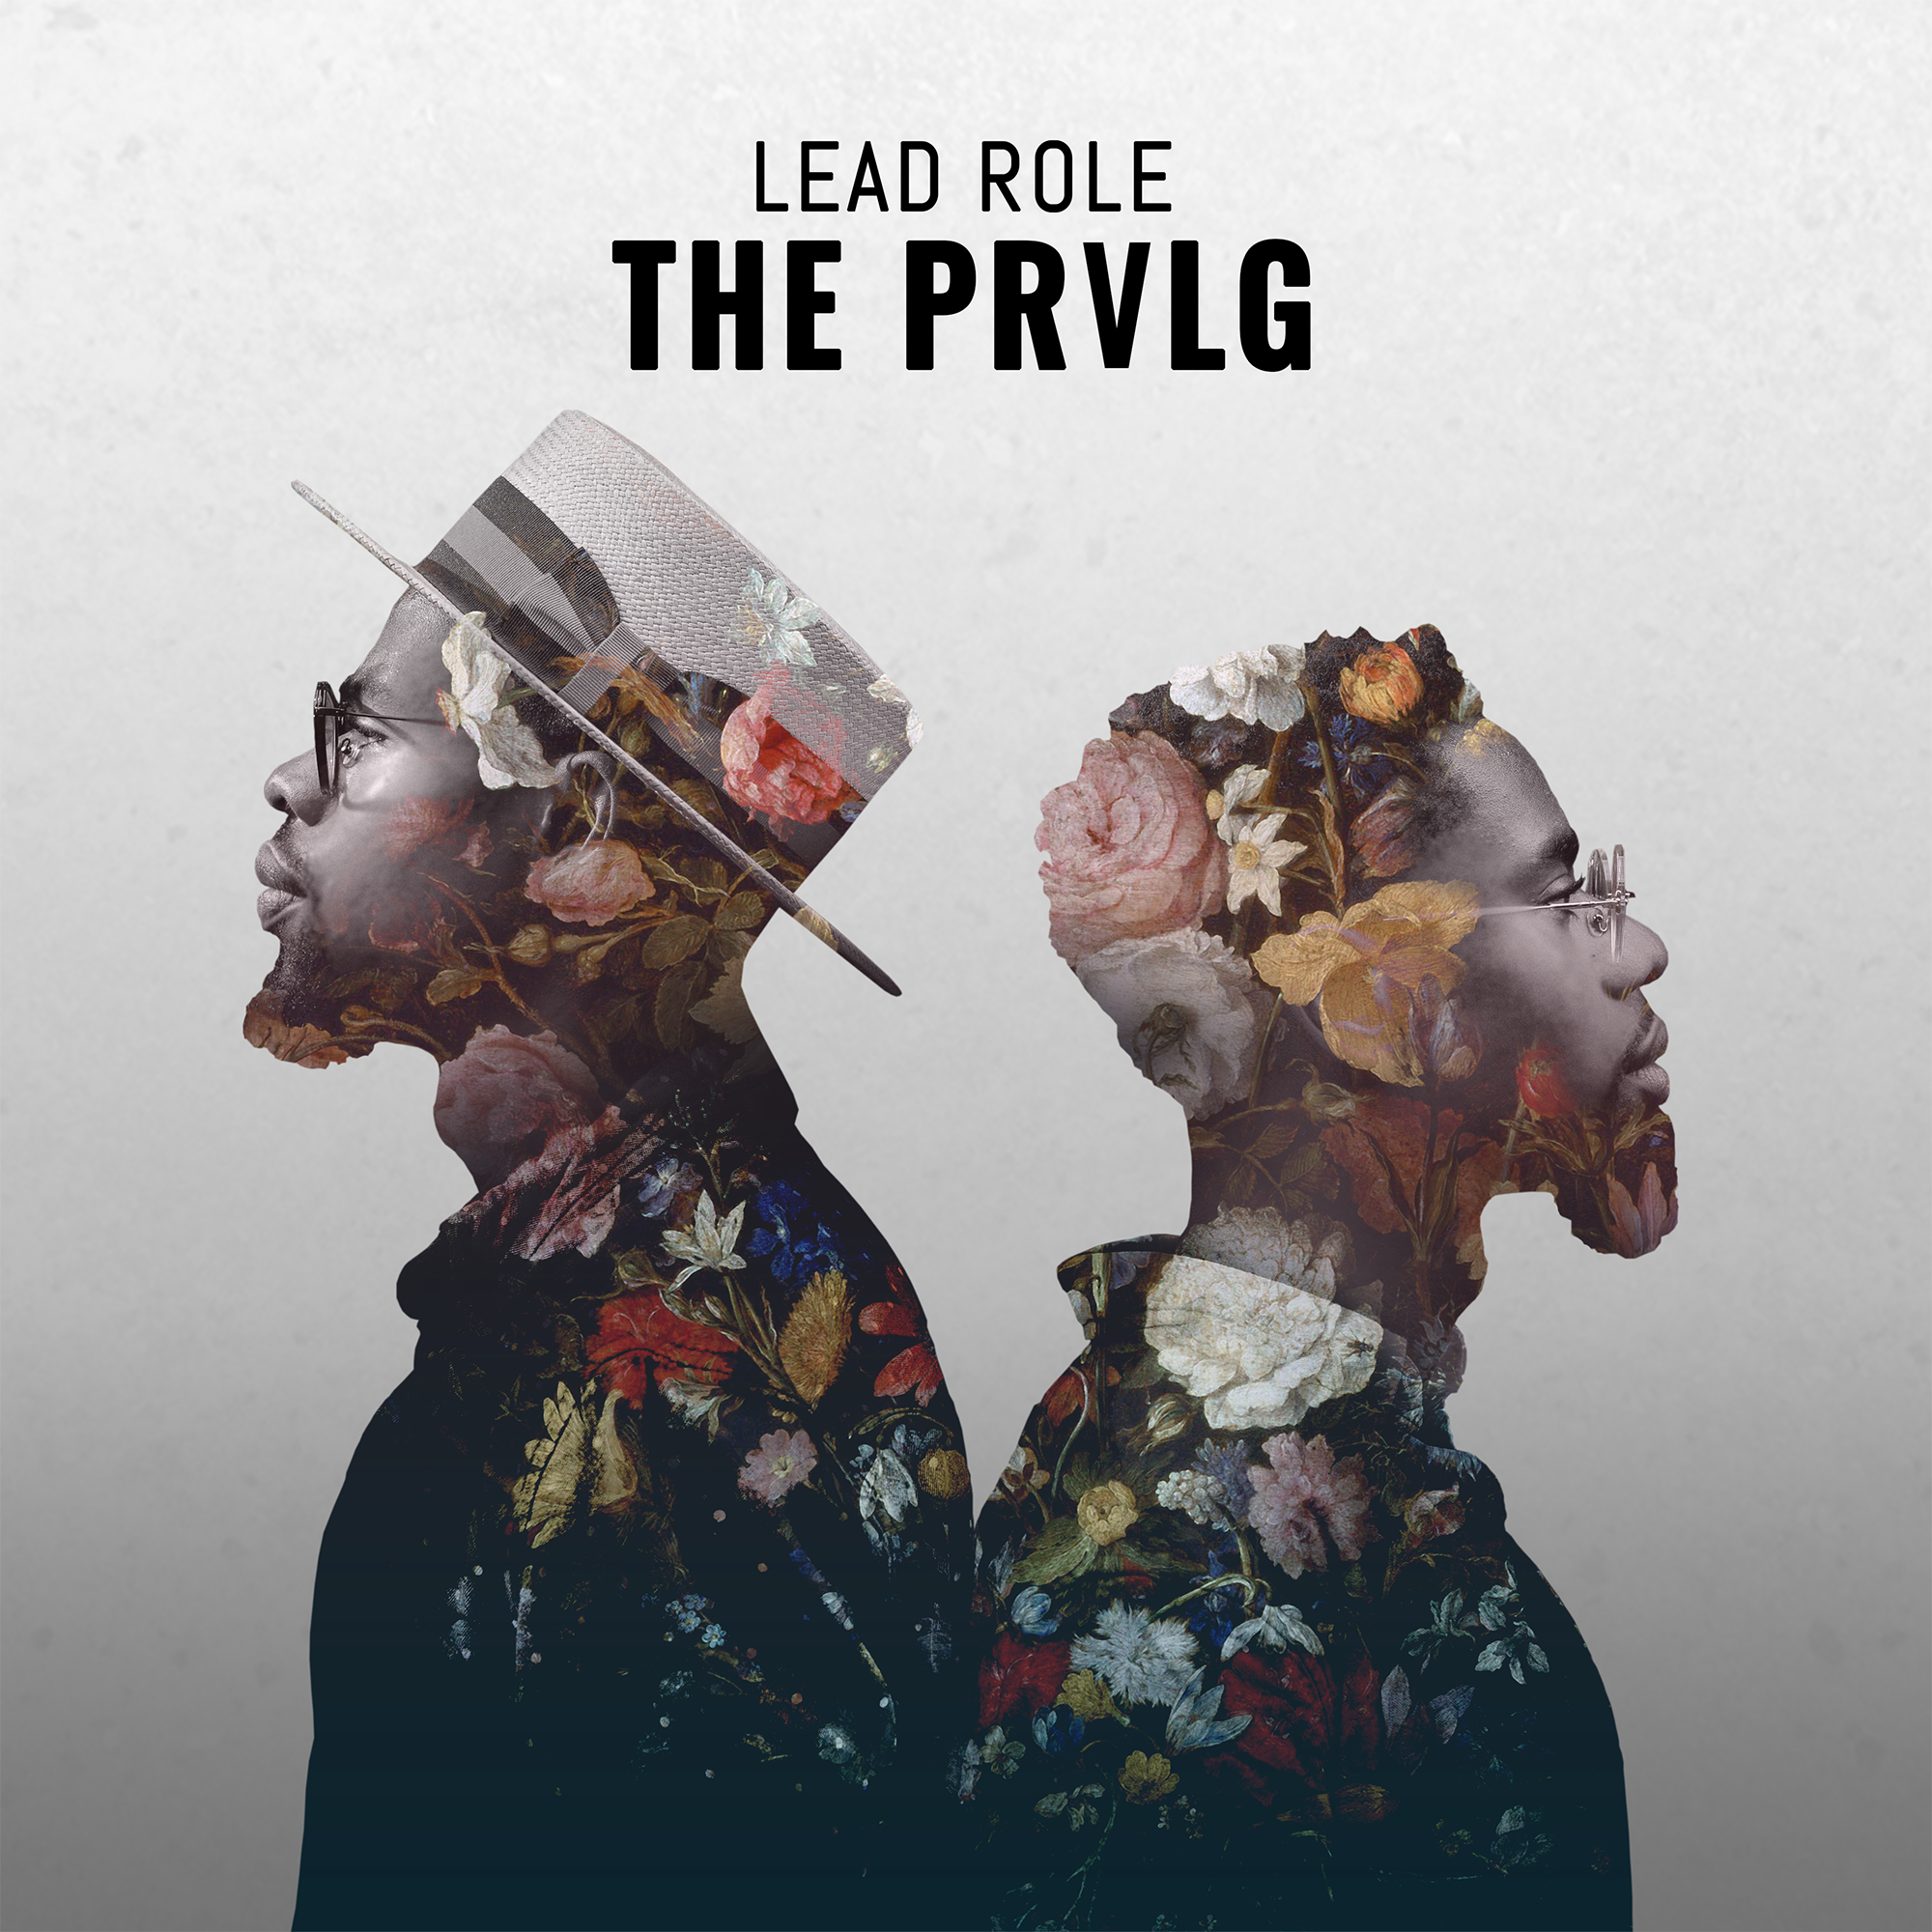 the prvlg_lead role.png